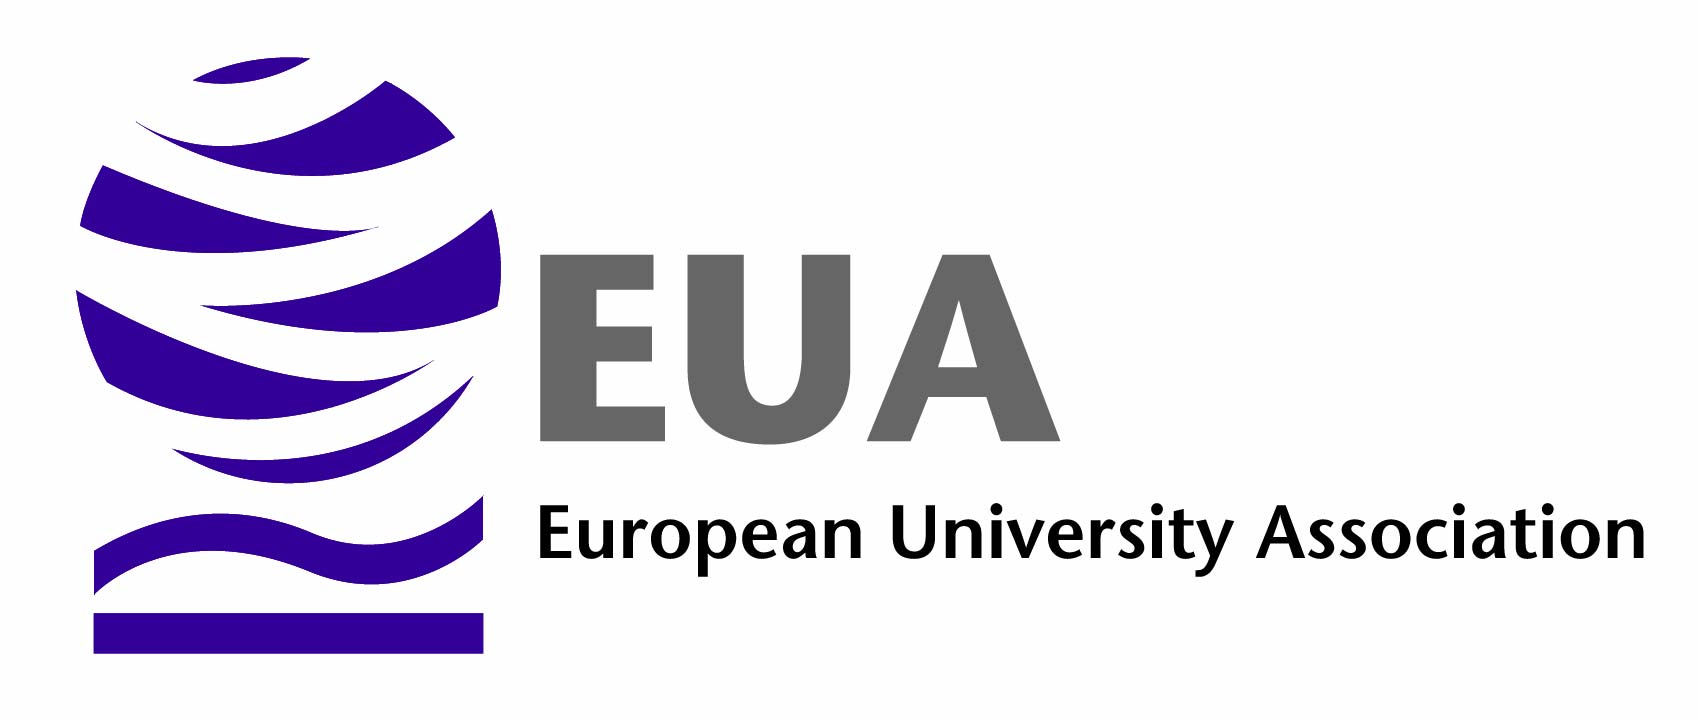 EE.UU. European University Association